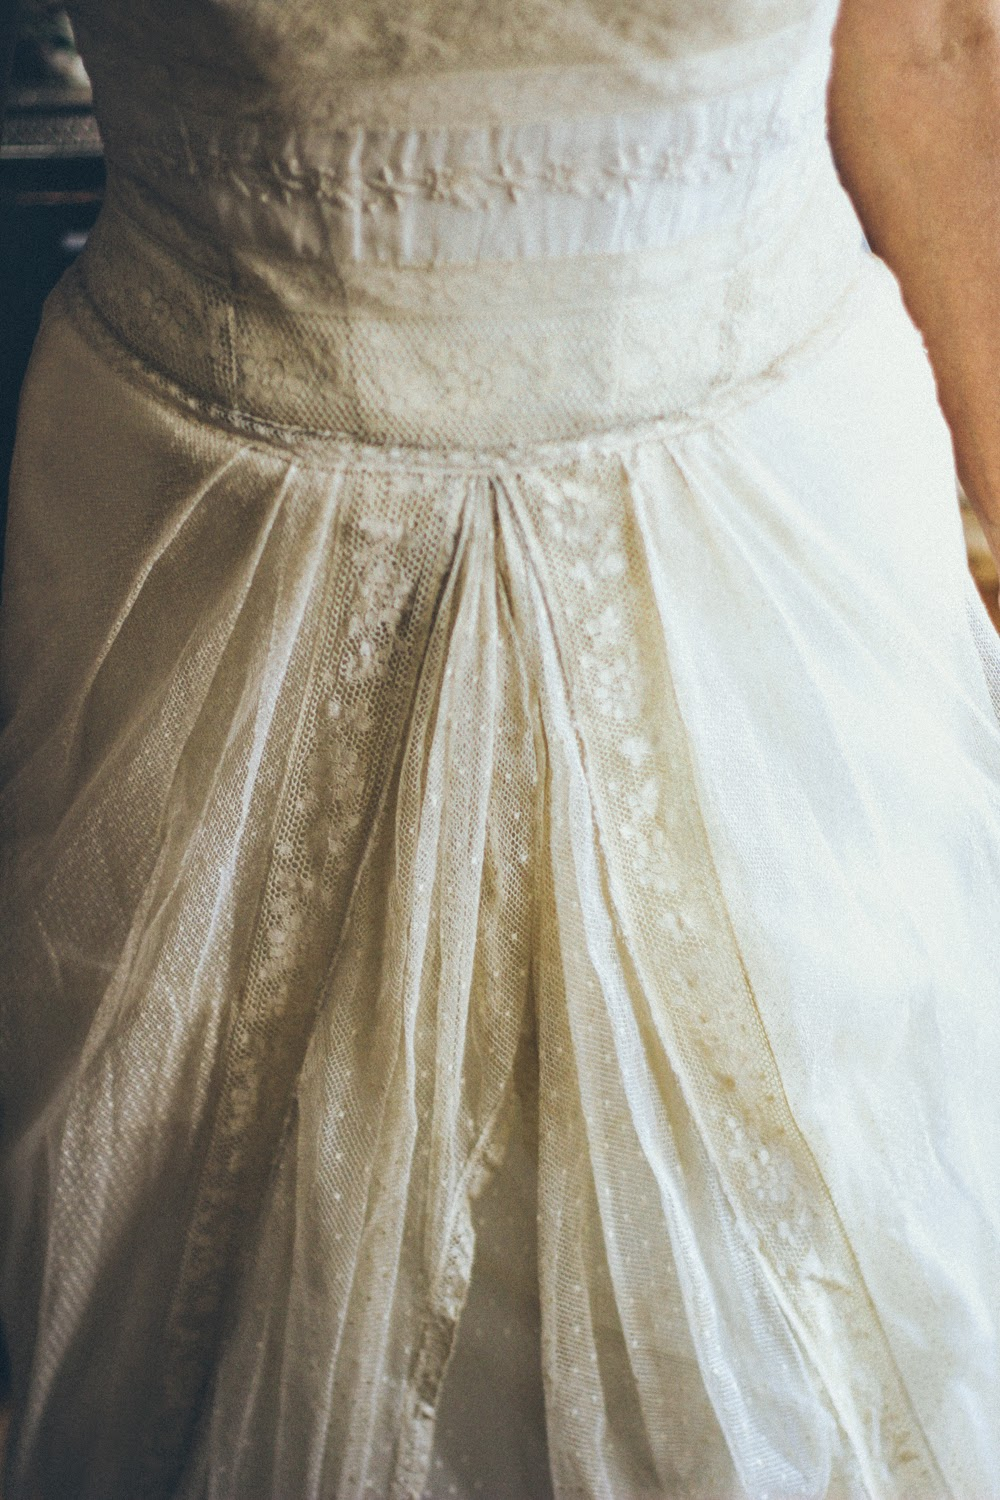 My handmade antique Normandy lace wedding dress